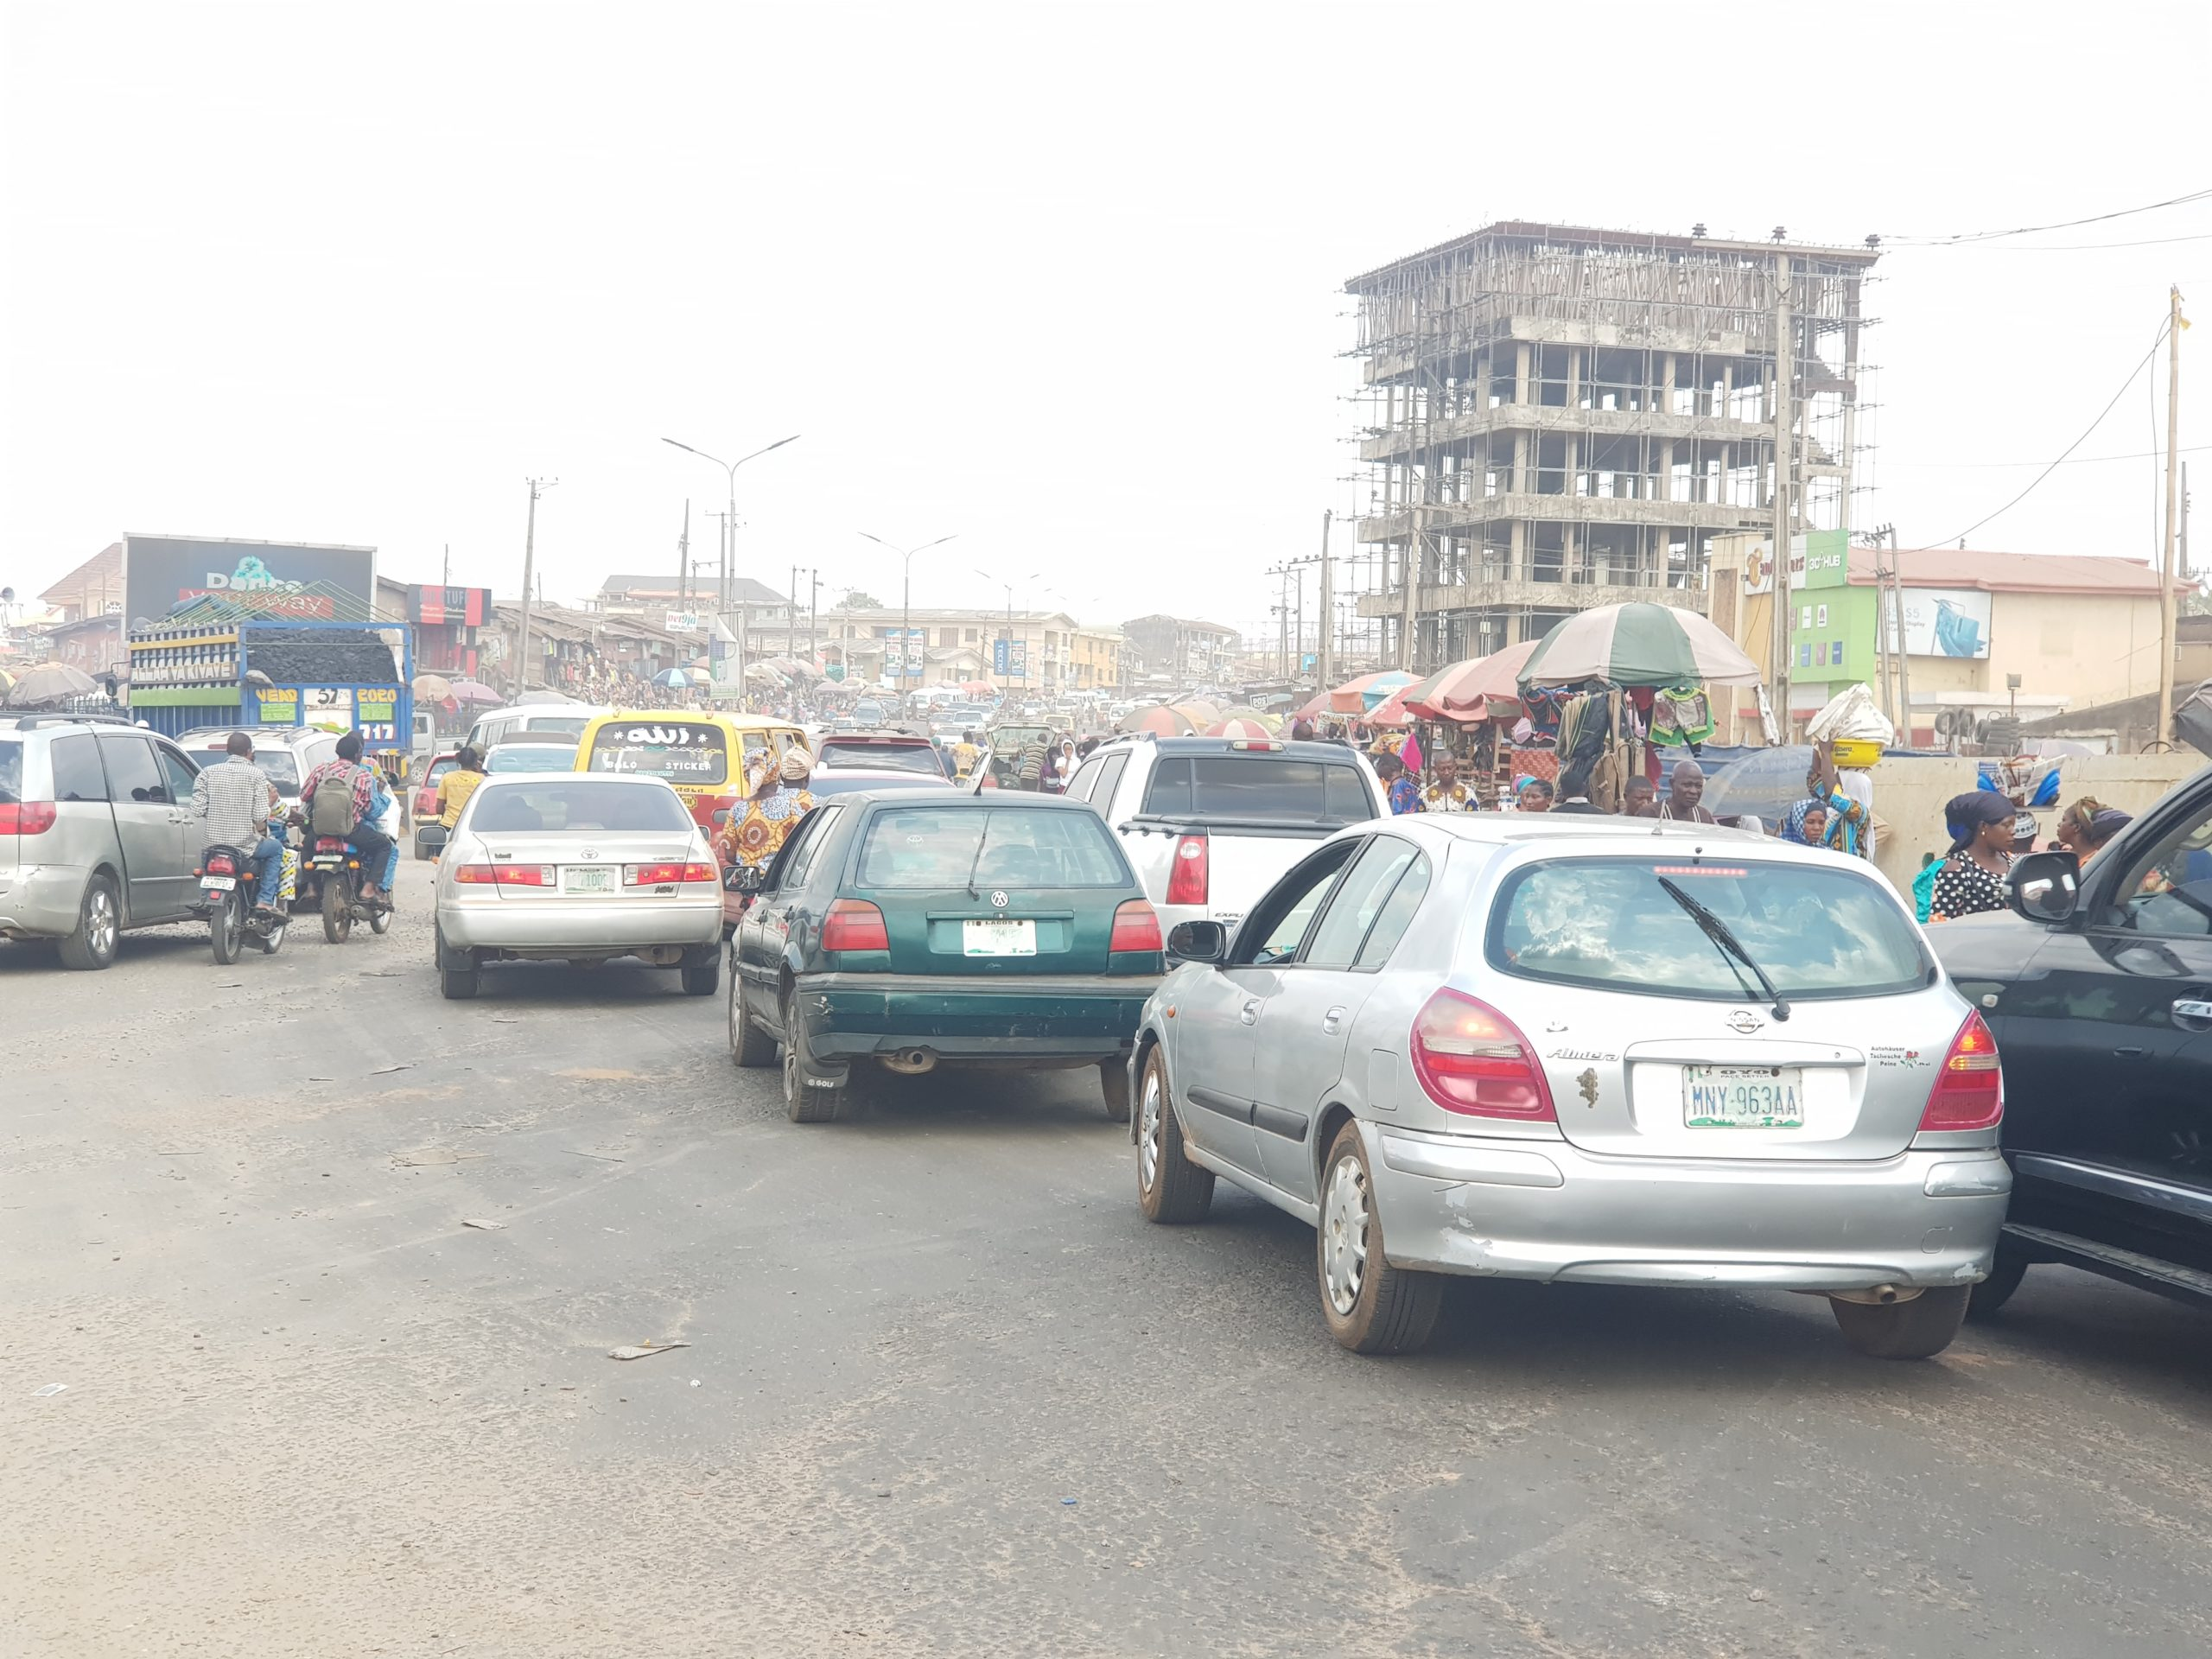 Poor road management in Ibadan makes the road congested